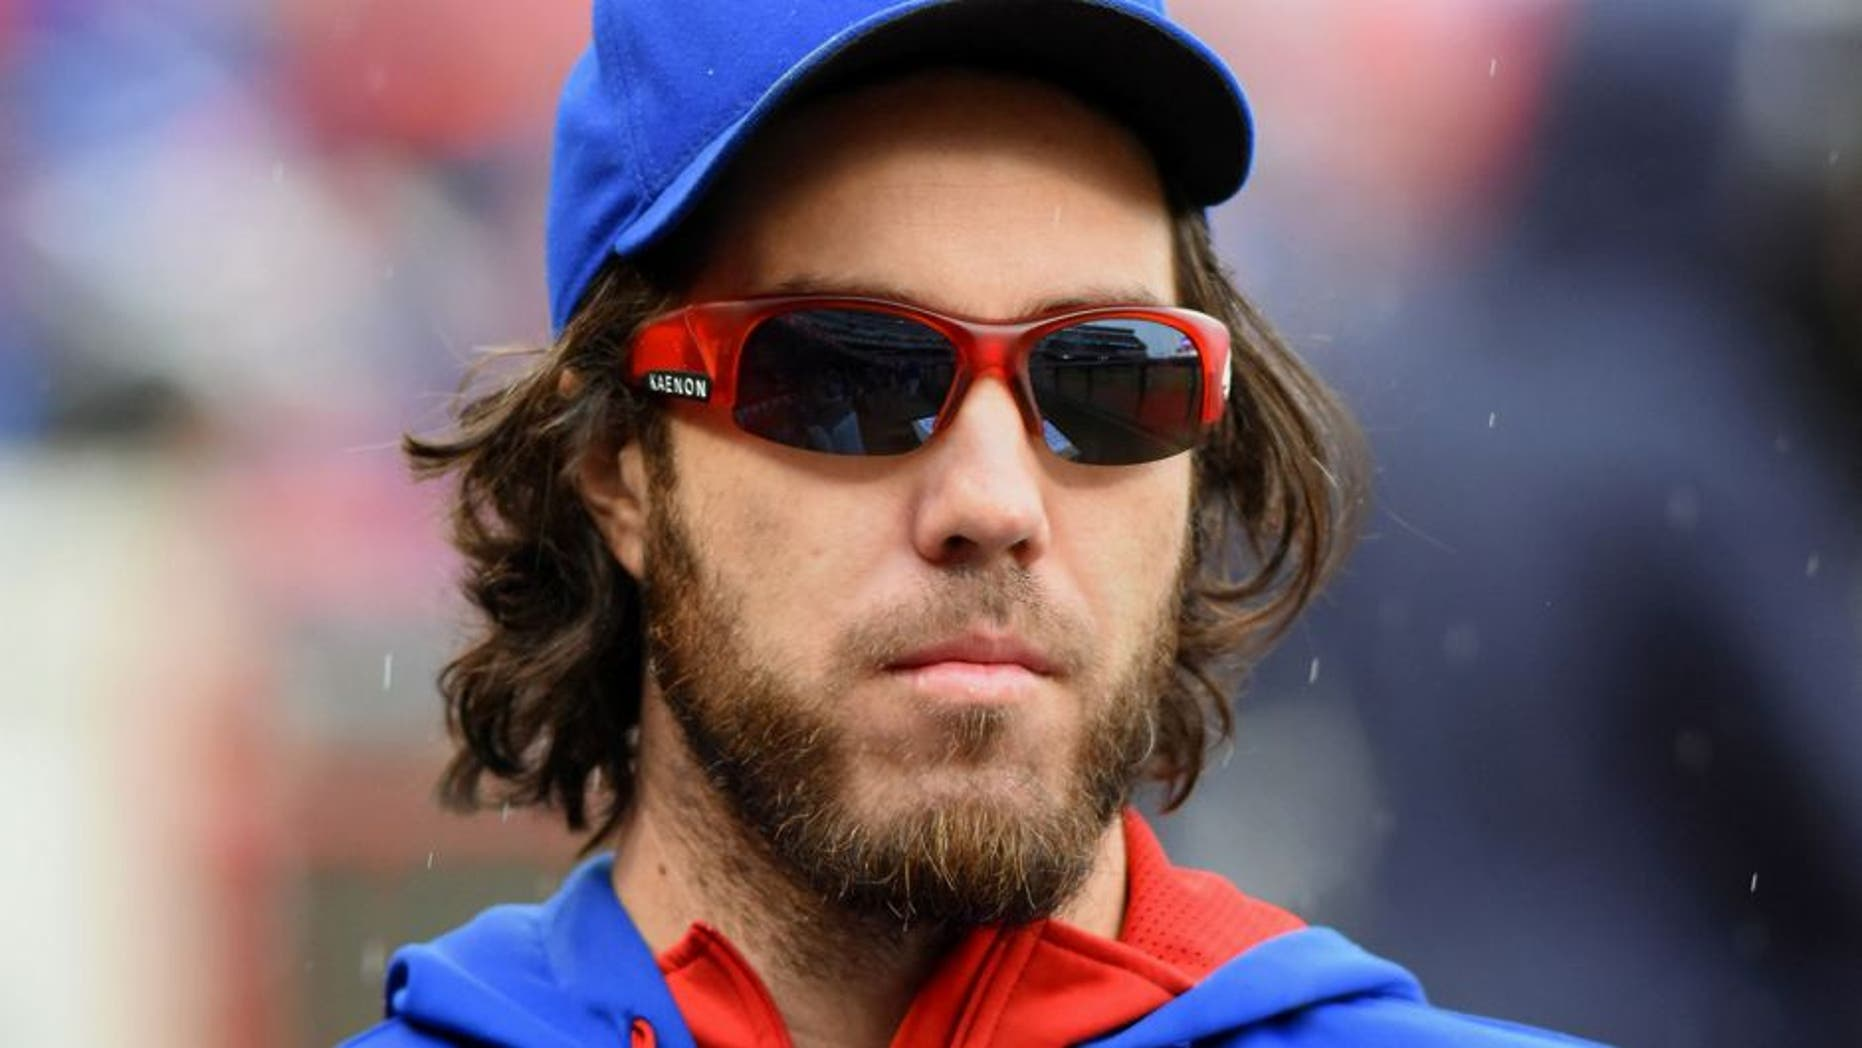 CINCINNATI, OH - OCTOBER 01: Dan Haren #50 of the Chicago Cubs looks on from the dugout during the game against the Cincinnati Reds at Great American Ball Park on October 1, 2015 in Cincinnati, Ohio. The Cubs defeated the Reds 5-3. (Photo by Mark Cunningham/MLB Photos via Getty Images)